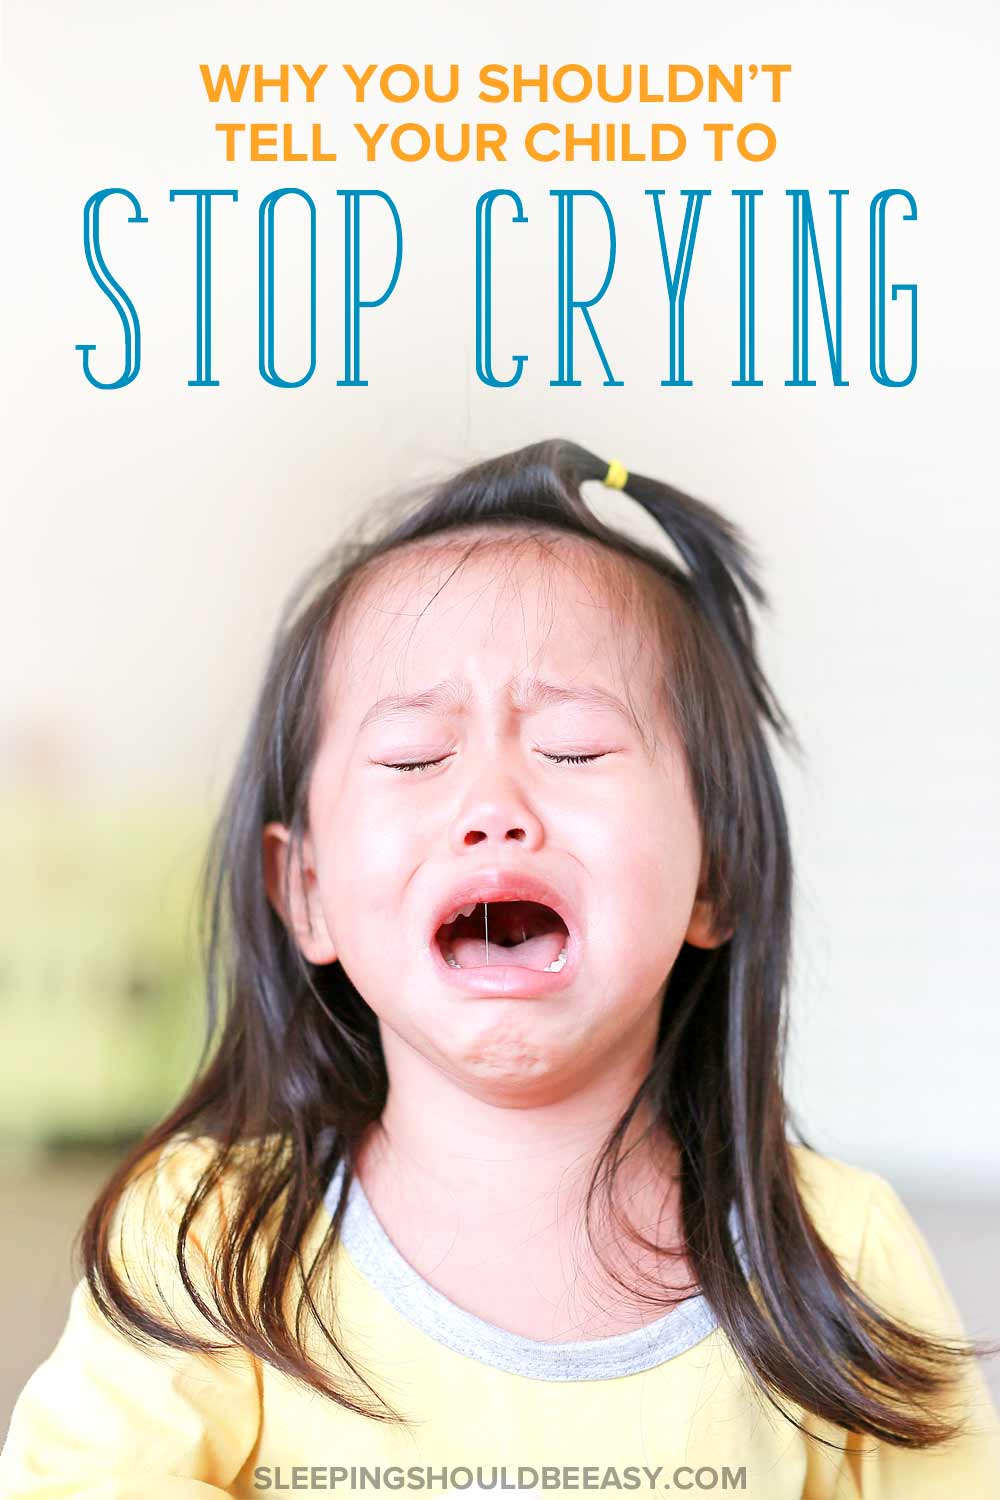 Parents, Should You Tell Your Child to Stop Crying?